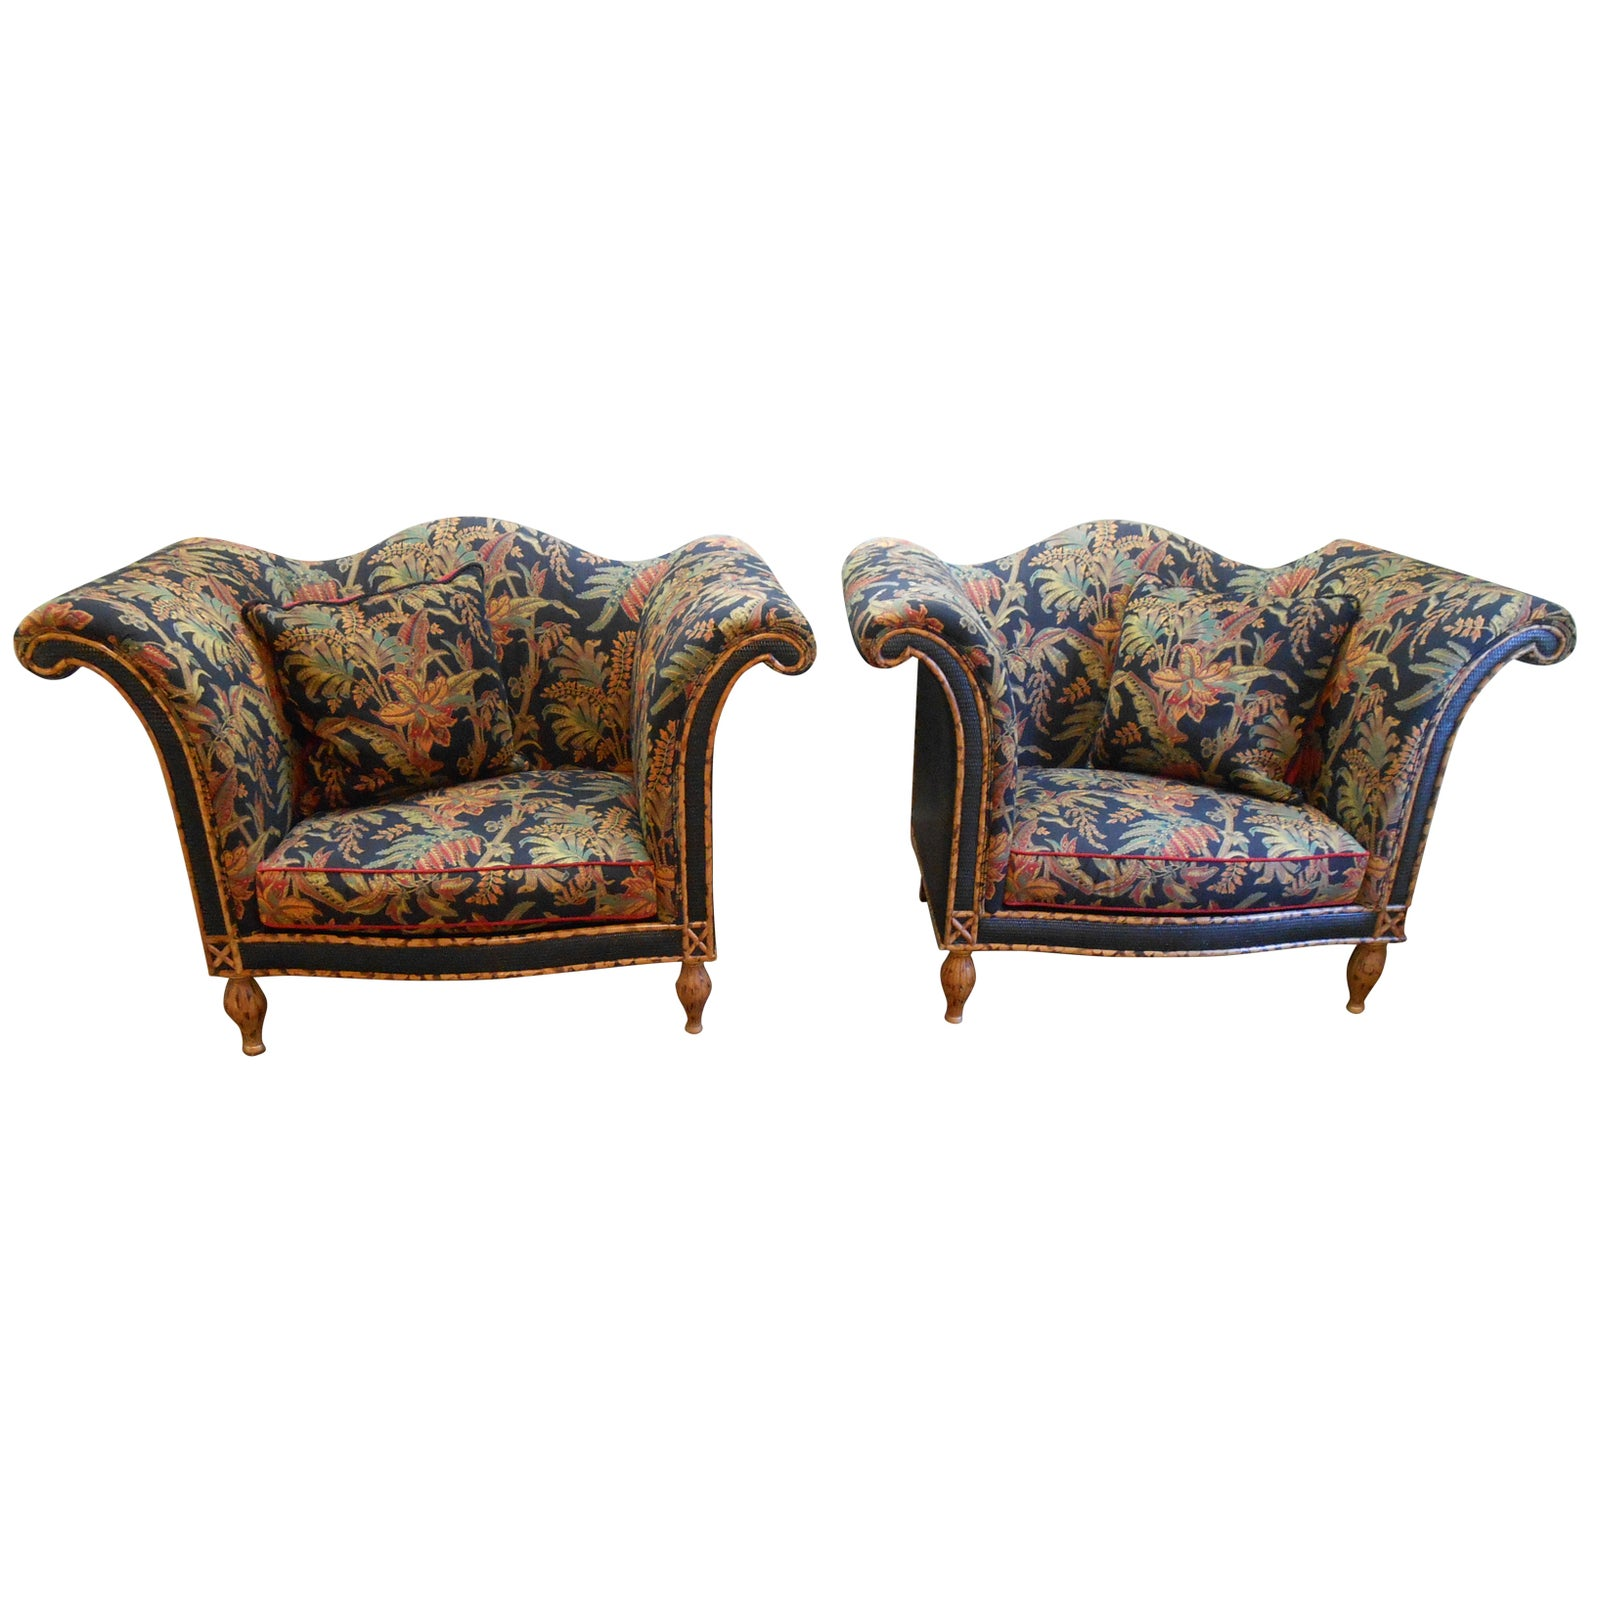 Super Raymond Waites For Lane Rattan Chairs A Pair Caraccident5 Cool Chair Designs And Ideas Caraccident5Info